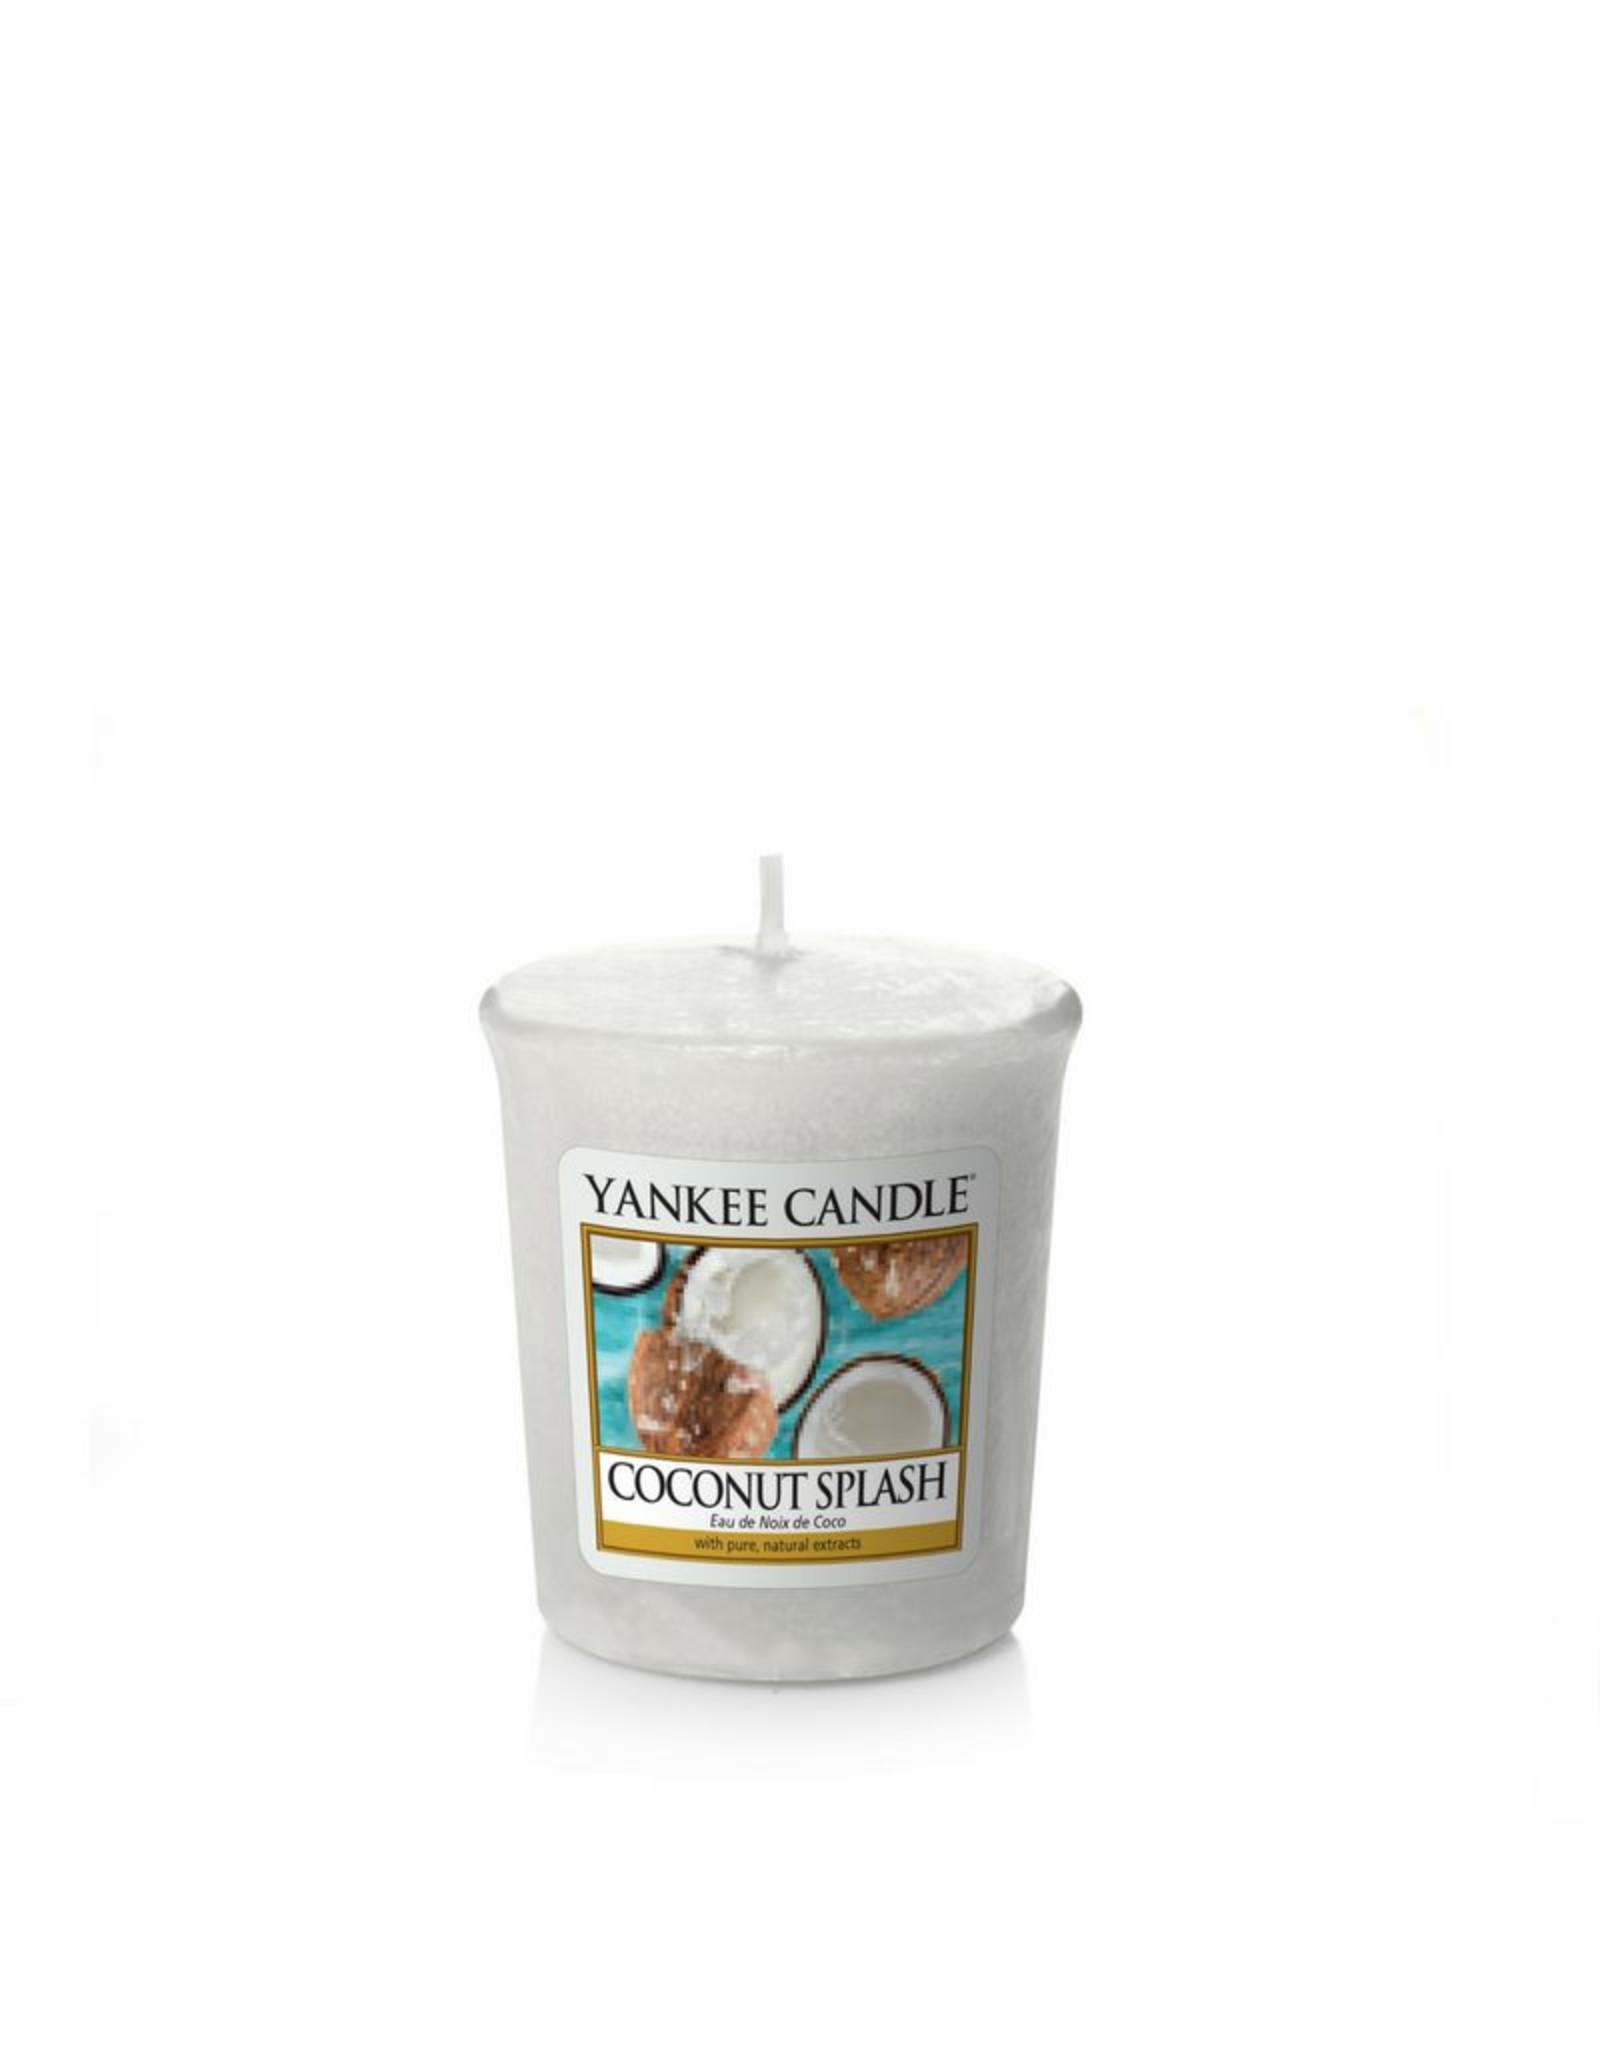 Yankee Candle Coconut Splash Votive